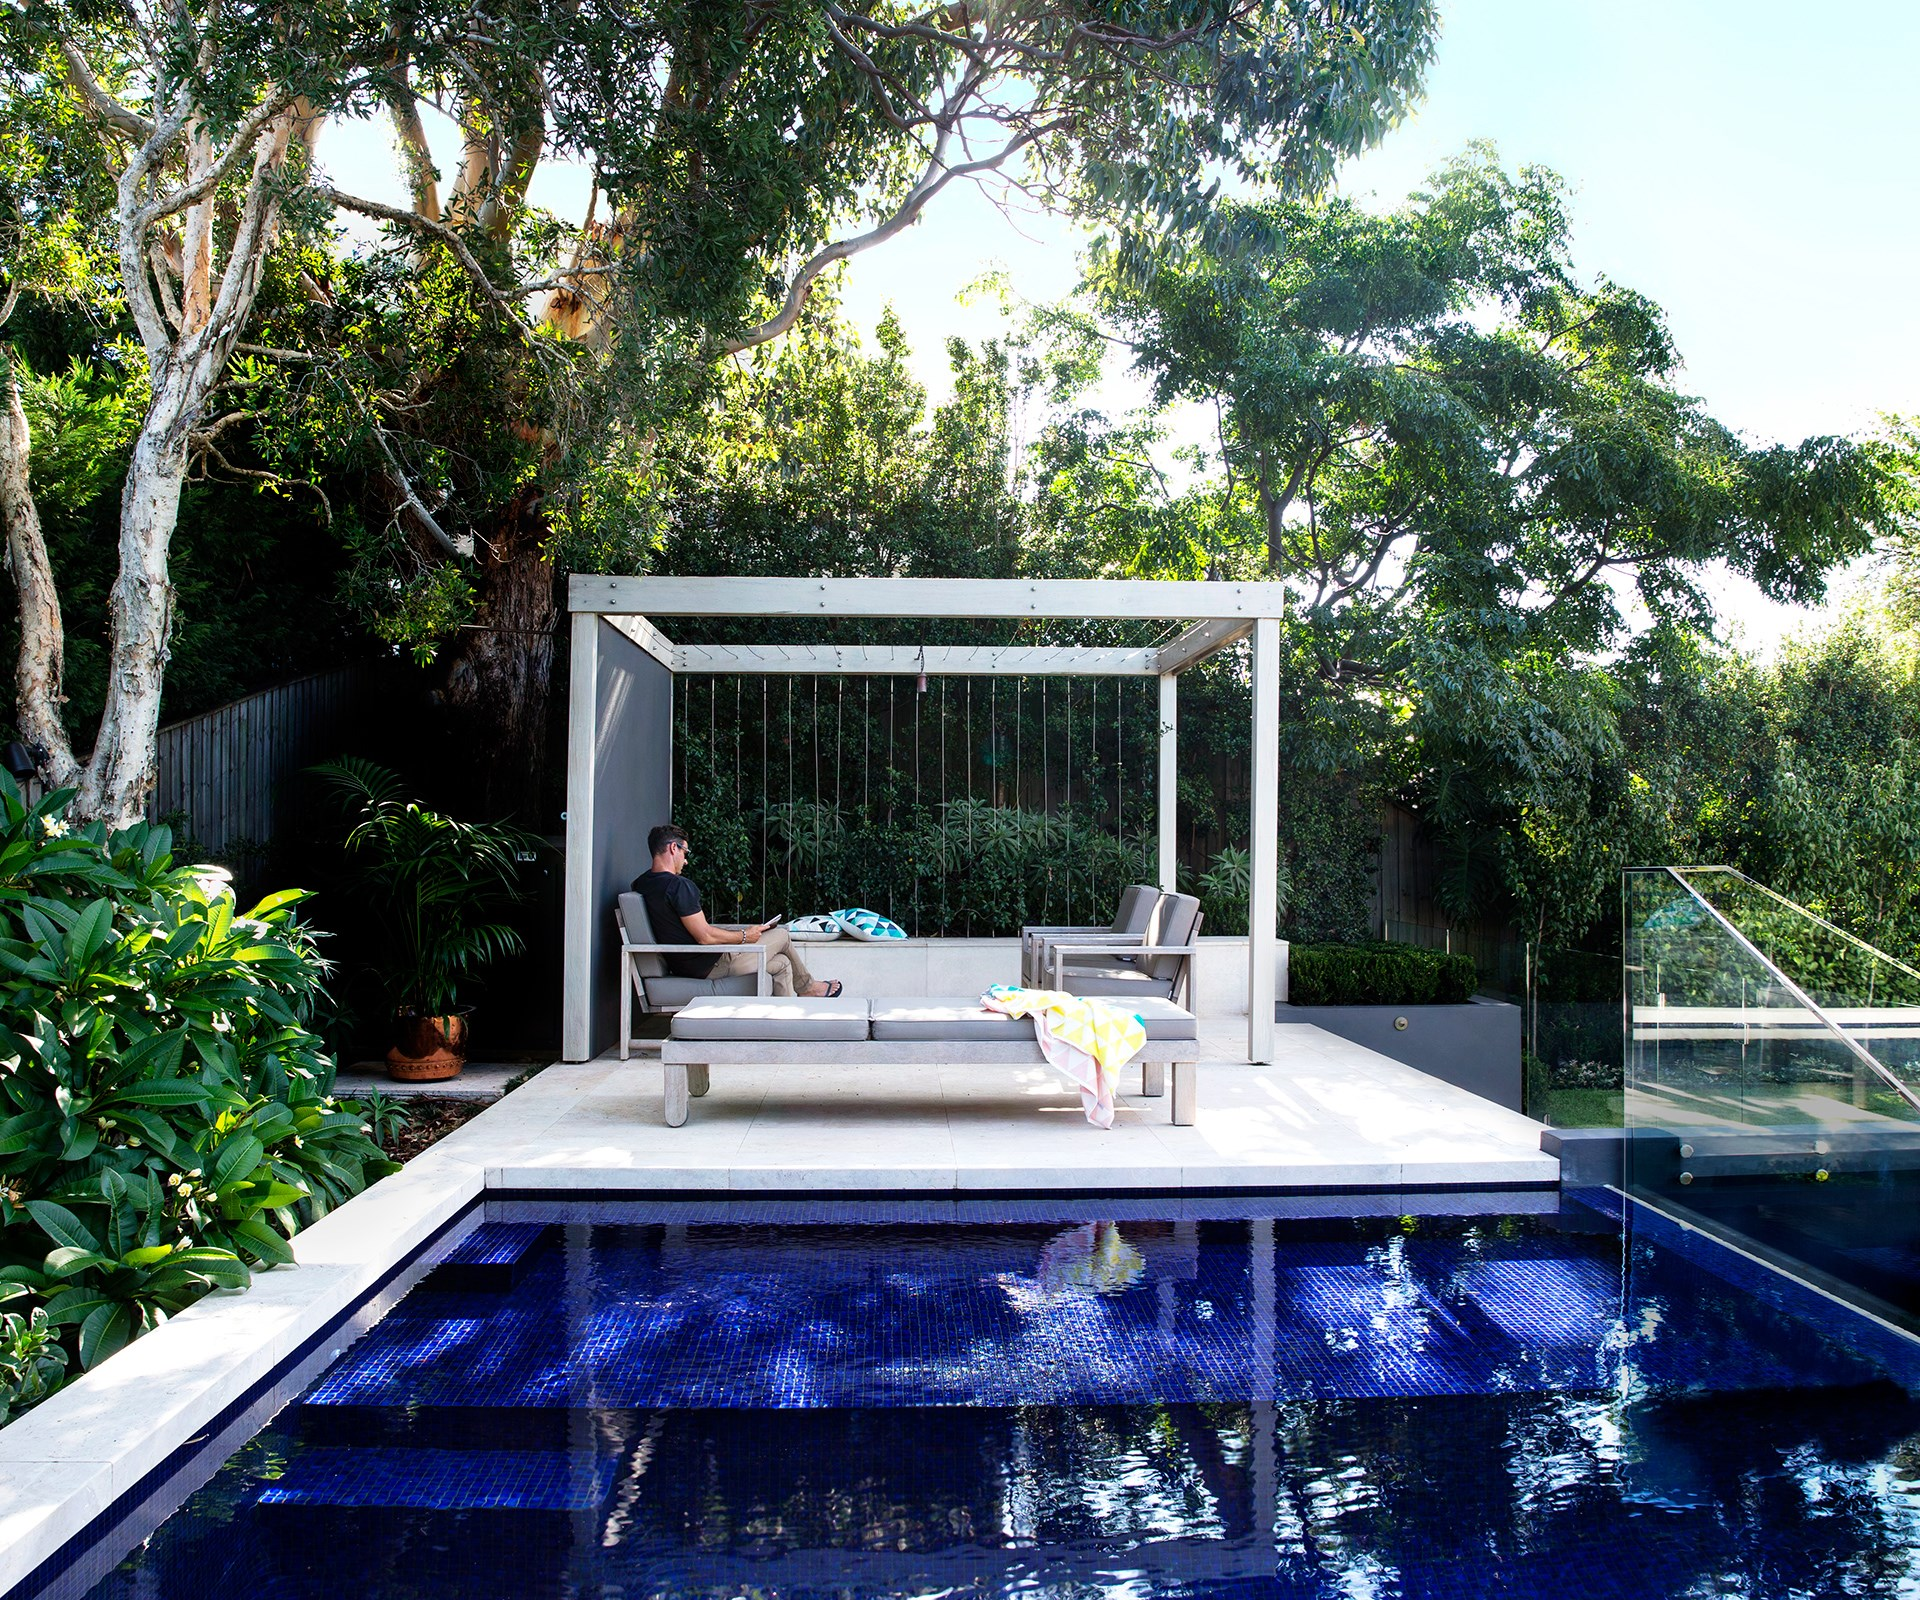 See more of this gorgeous [North Sydney backyard here](http://www.homestolove.com.au/holiday-at-home-northern-sydney-garden-1915).